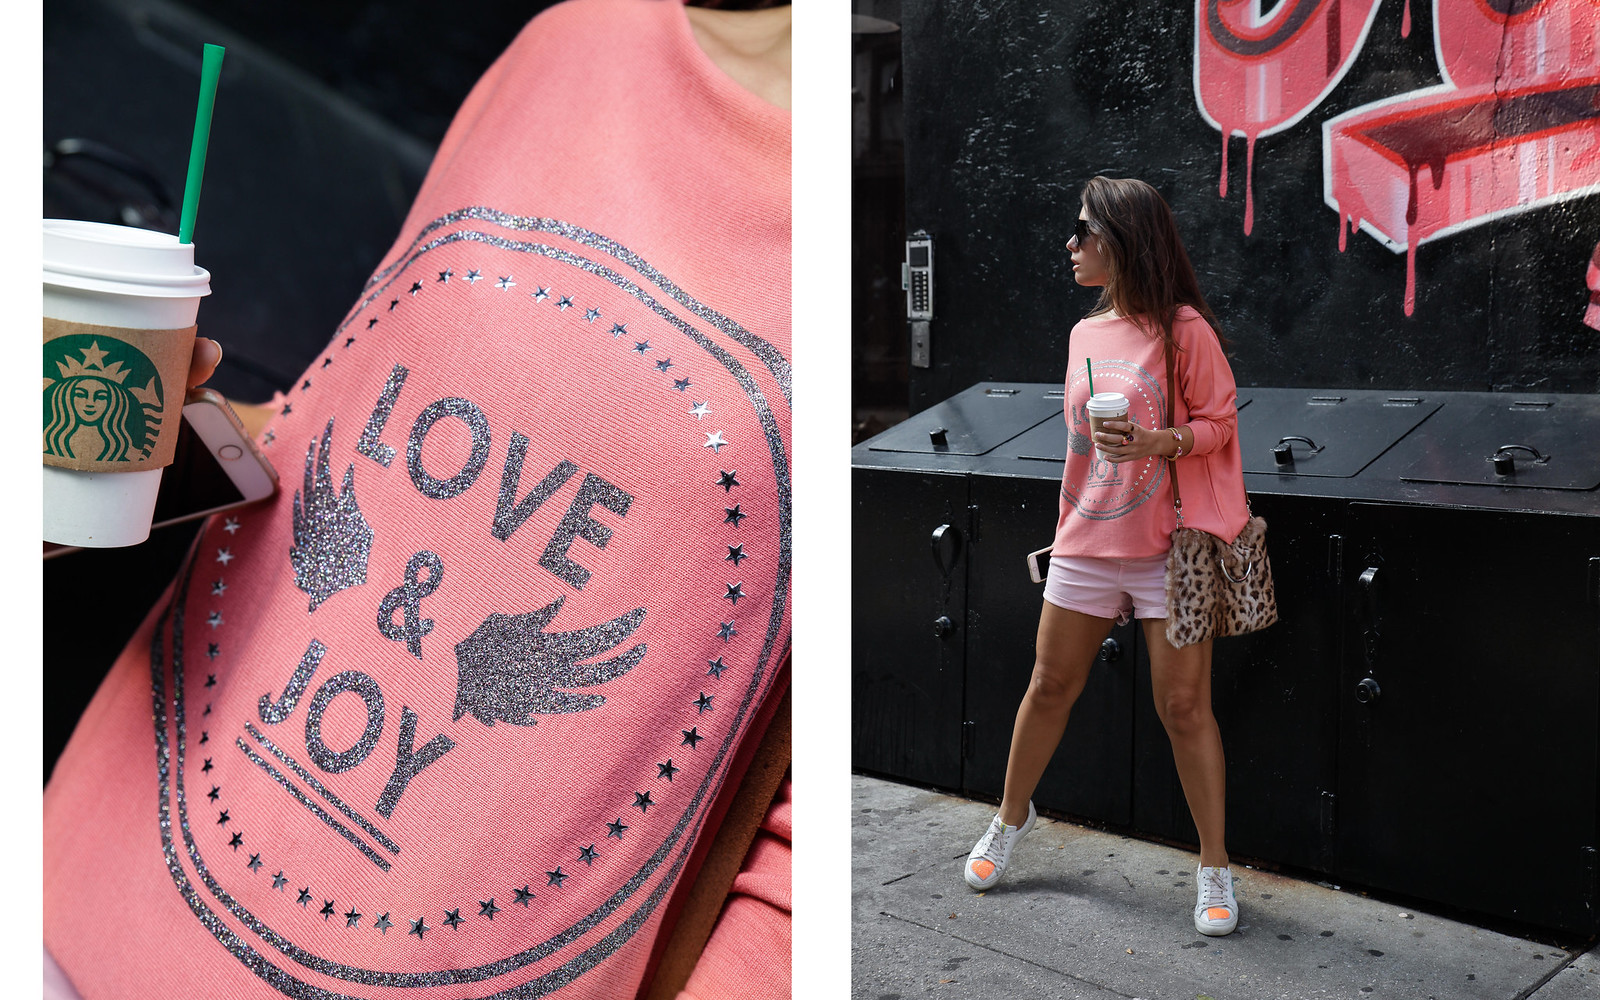 09_RÜGA_BRAND_AMBASSADOR_FALL_18_THEGUESTGIRL_NEW_PINK_STREET_STYLE_NYFW_NEW_YORK_HENRY_LONDON_THE_GUEST_GIRL